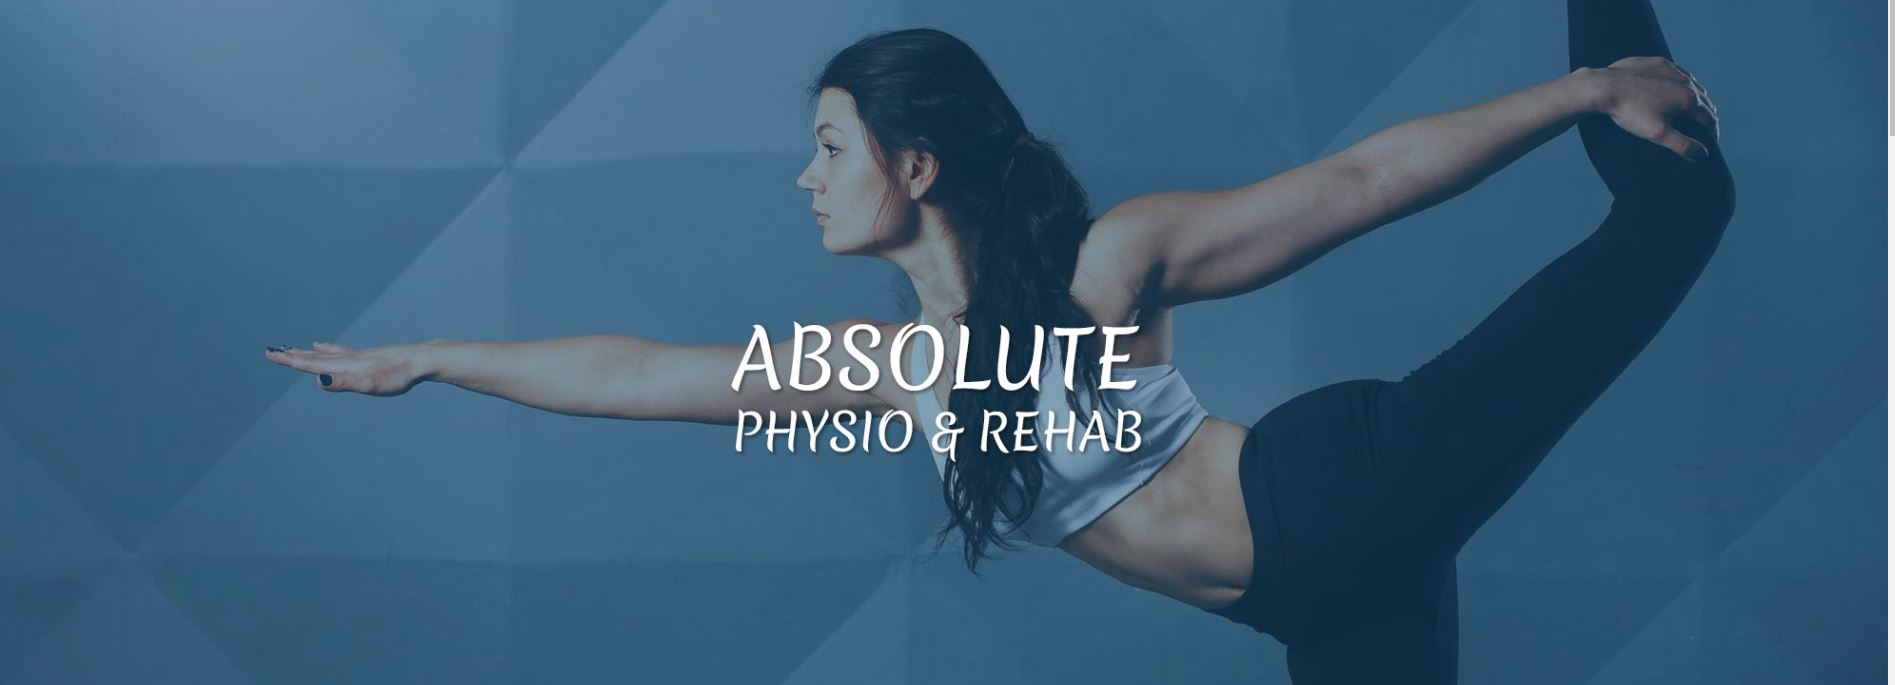 Absolute Physio & Rehab